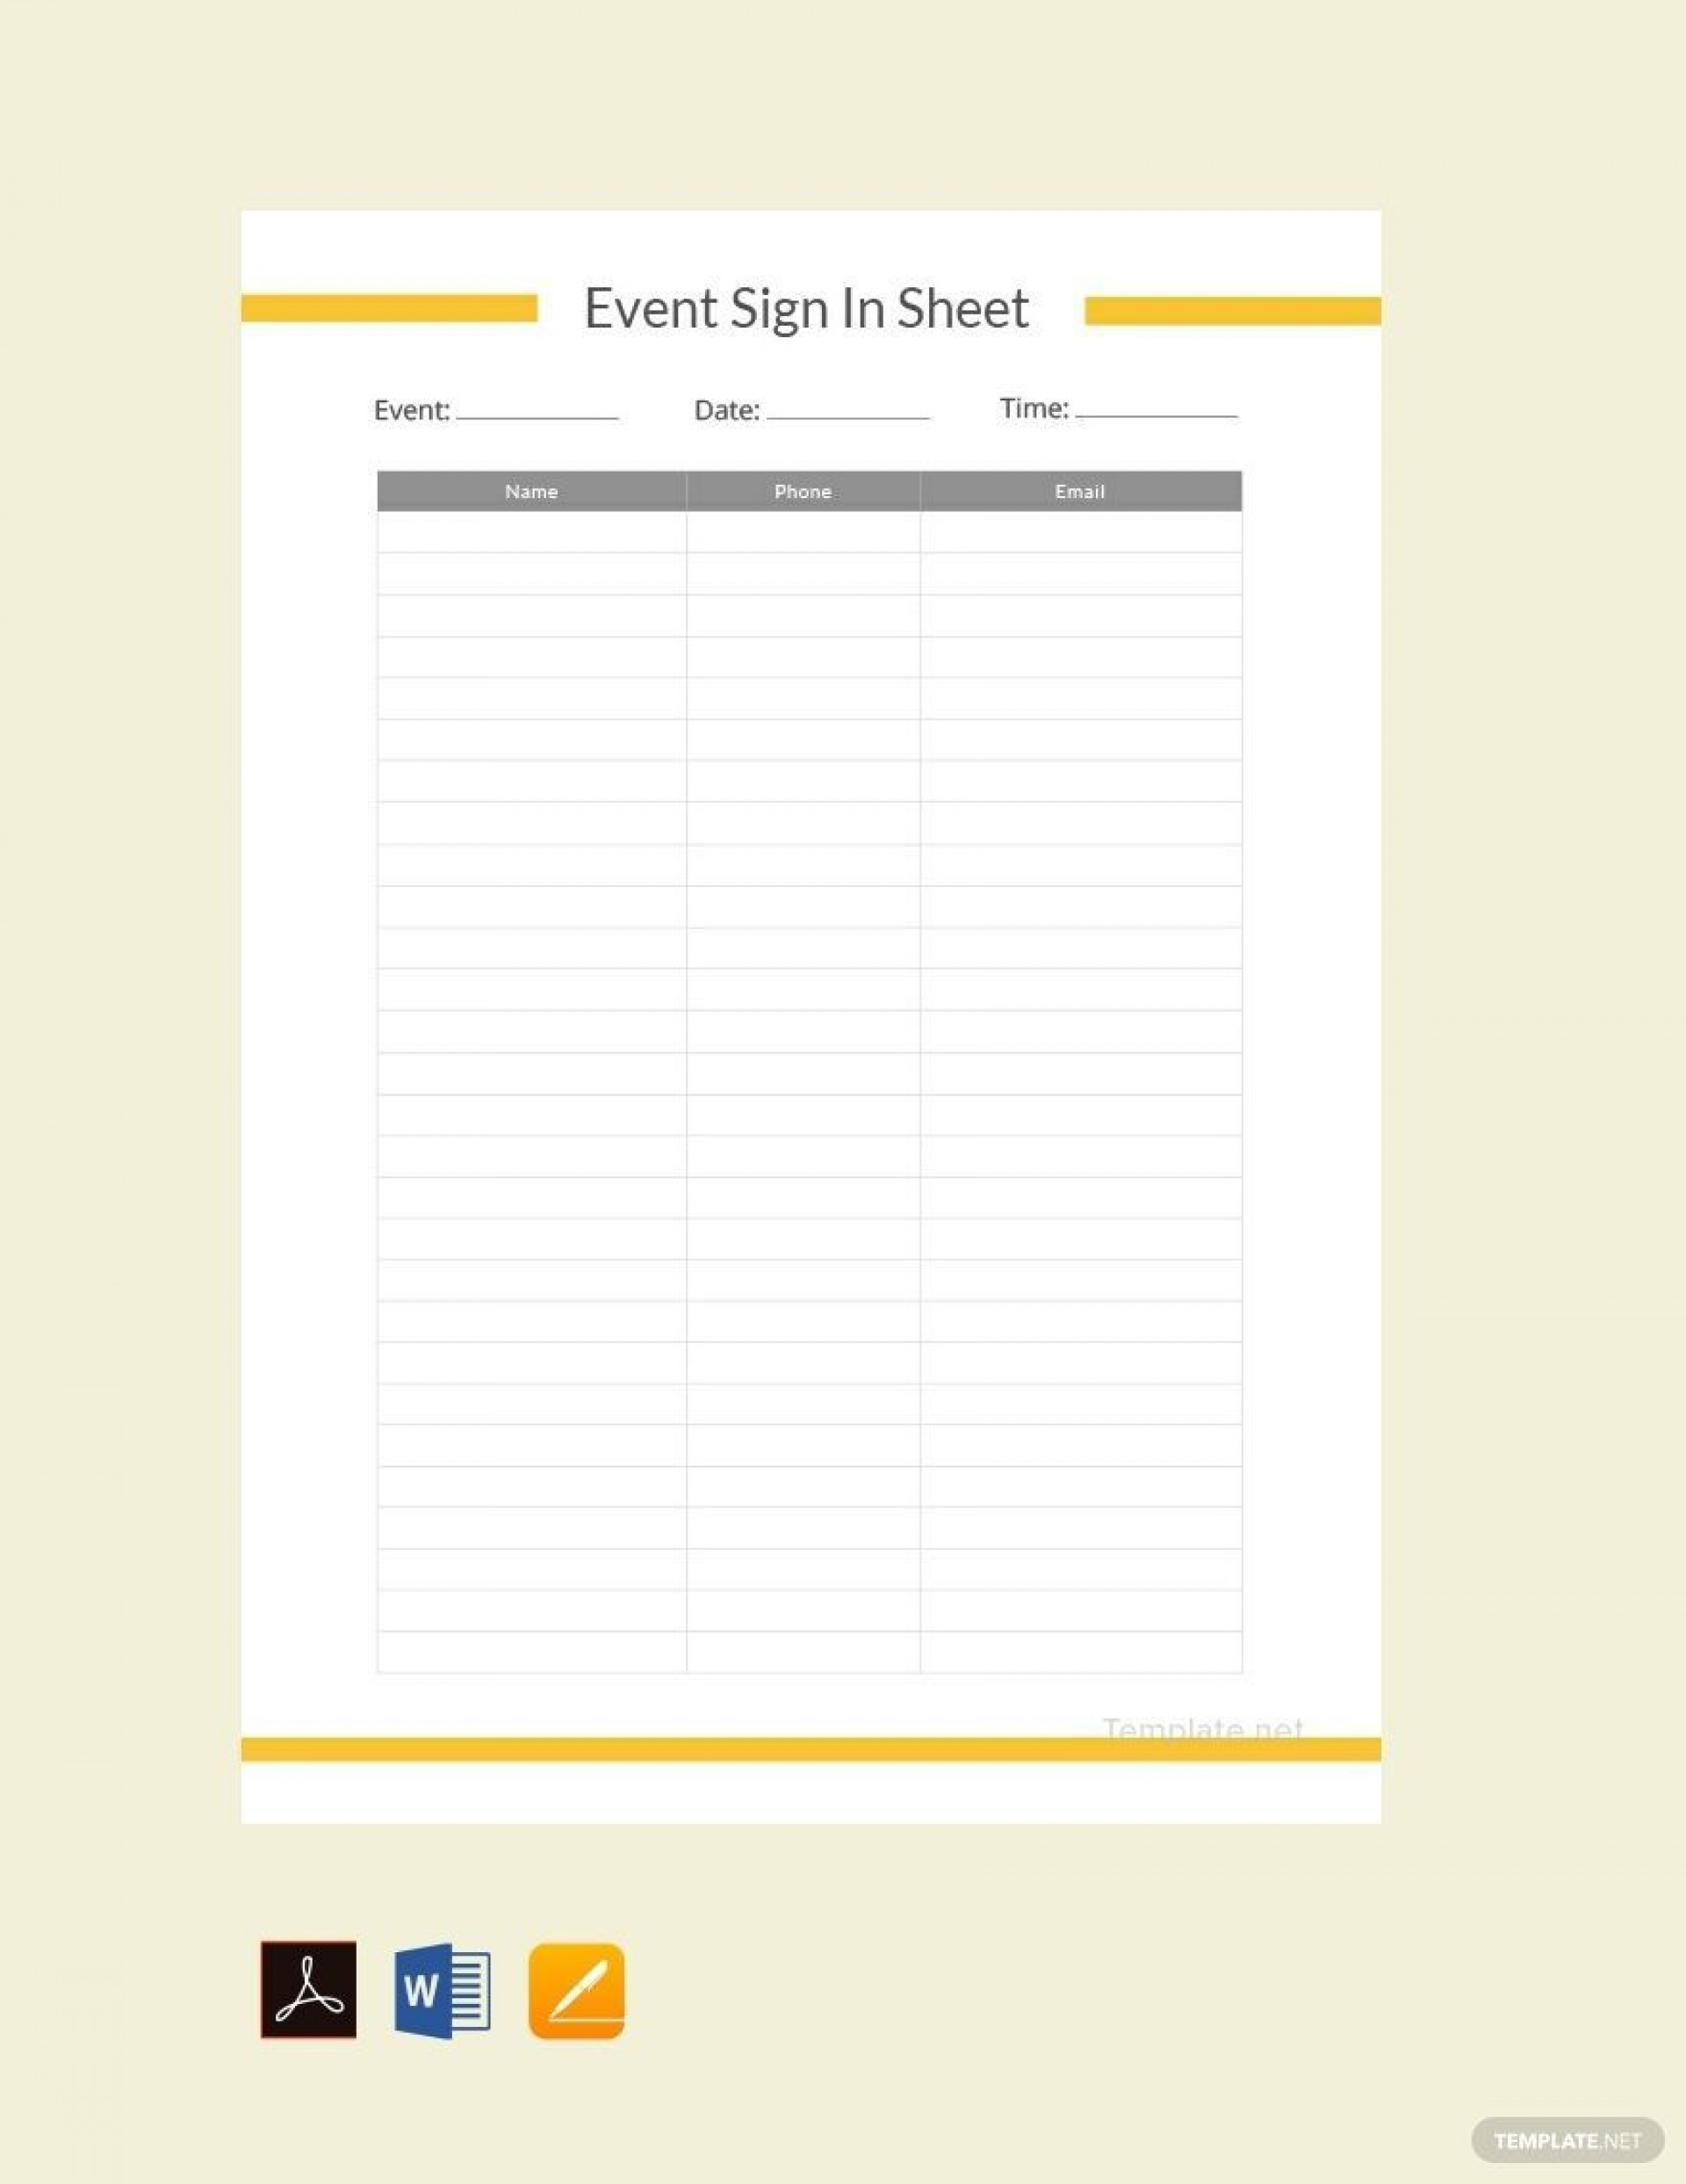 000 Exceptional Sign In Sheet Template Excel Download Image 1920